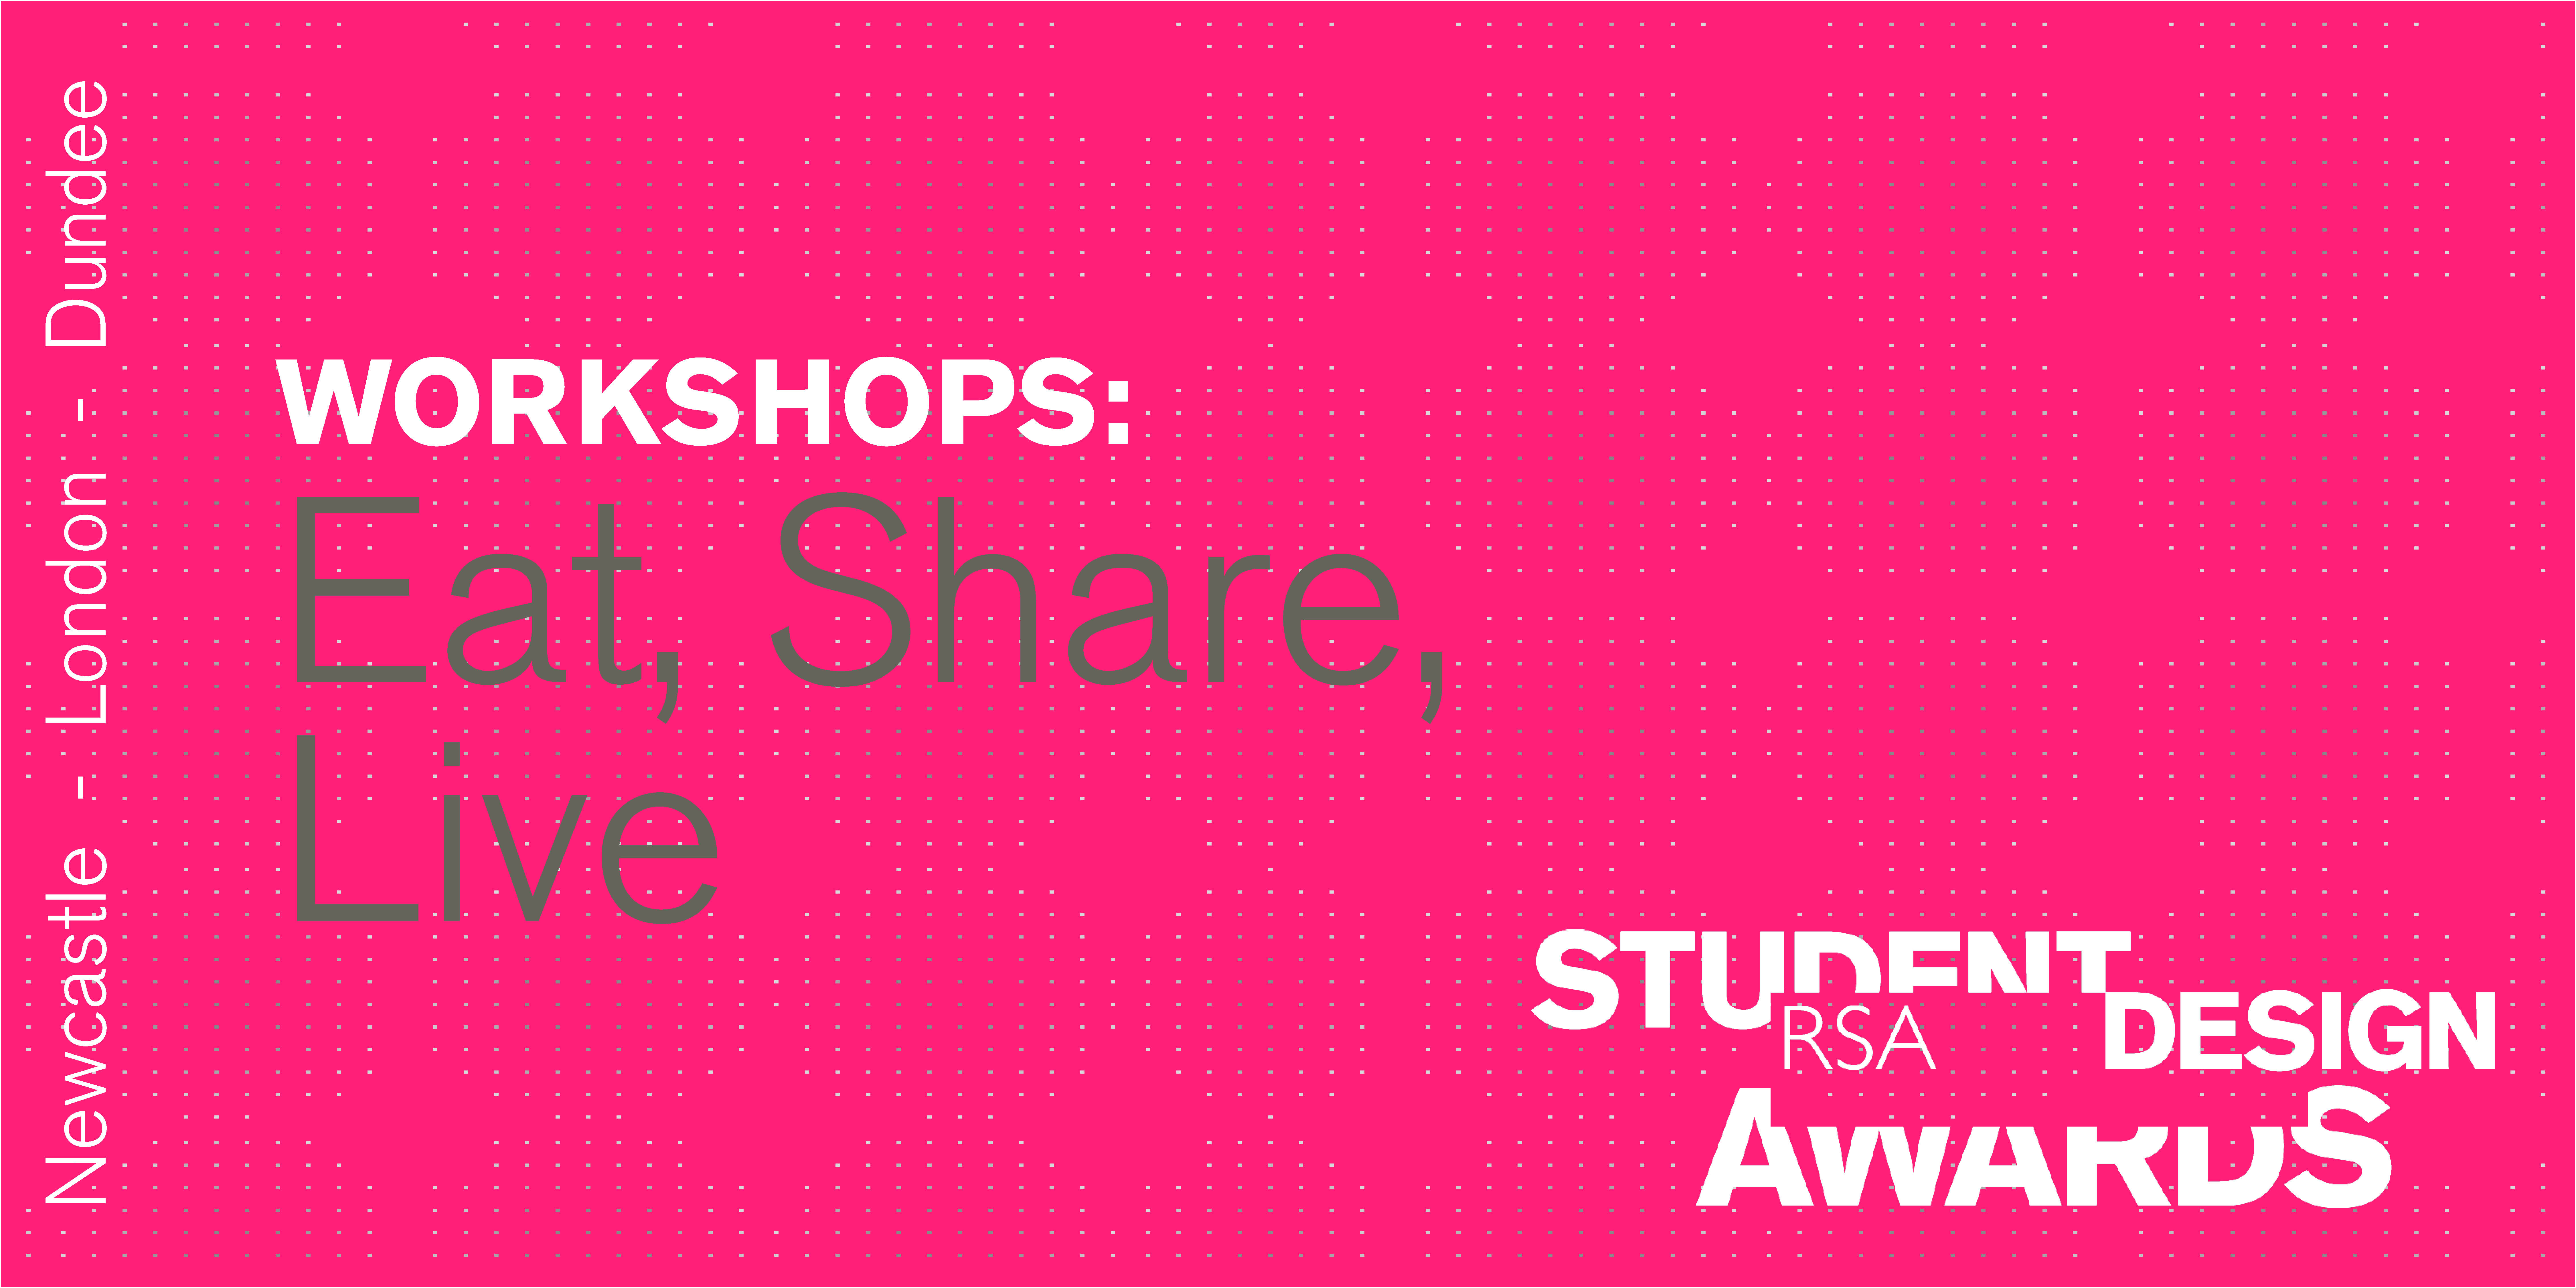 Eat, Share, Live workshops (Newcastle, London, Dundee): Registration now live